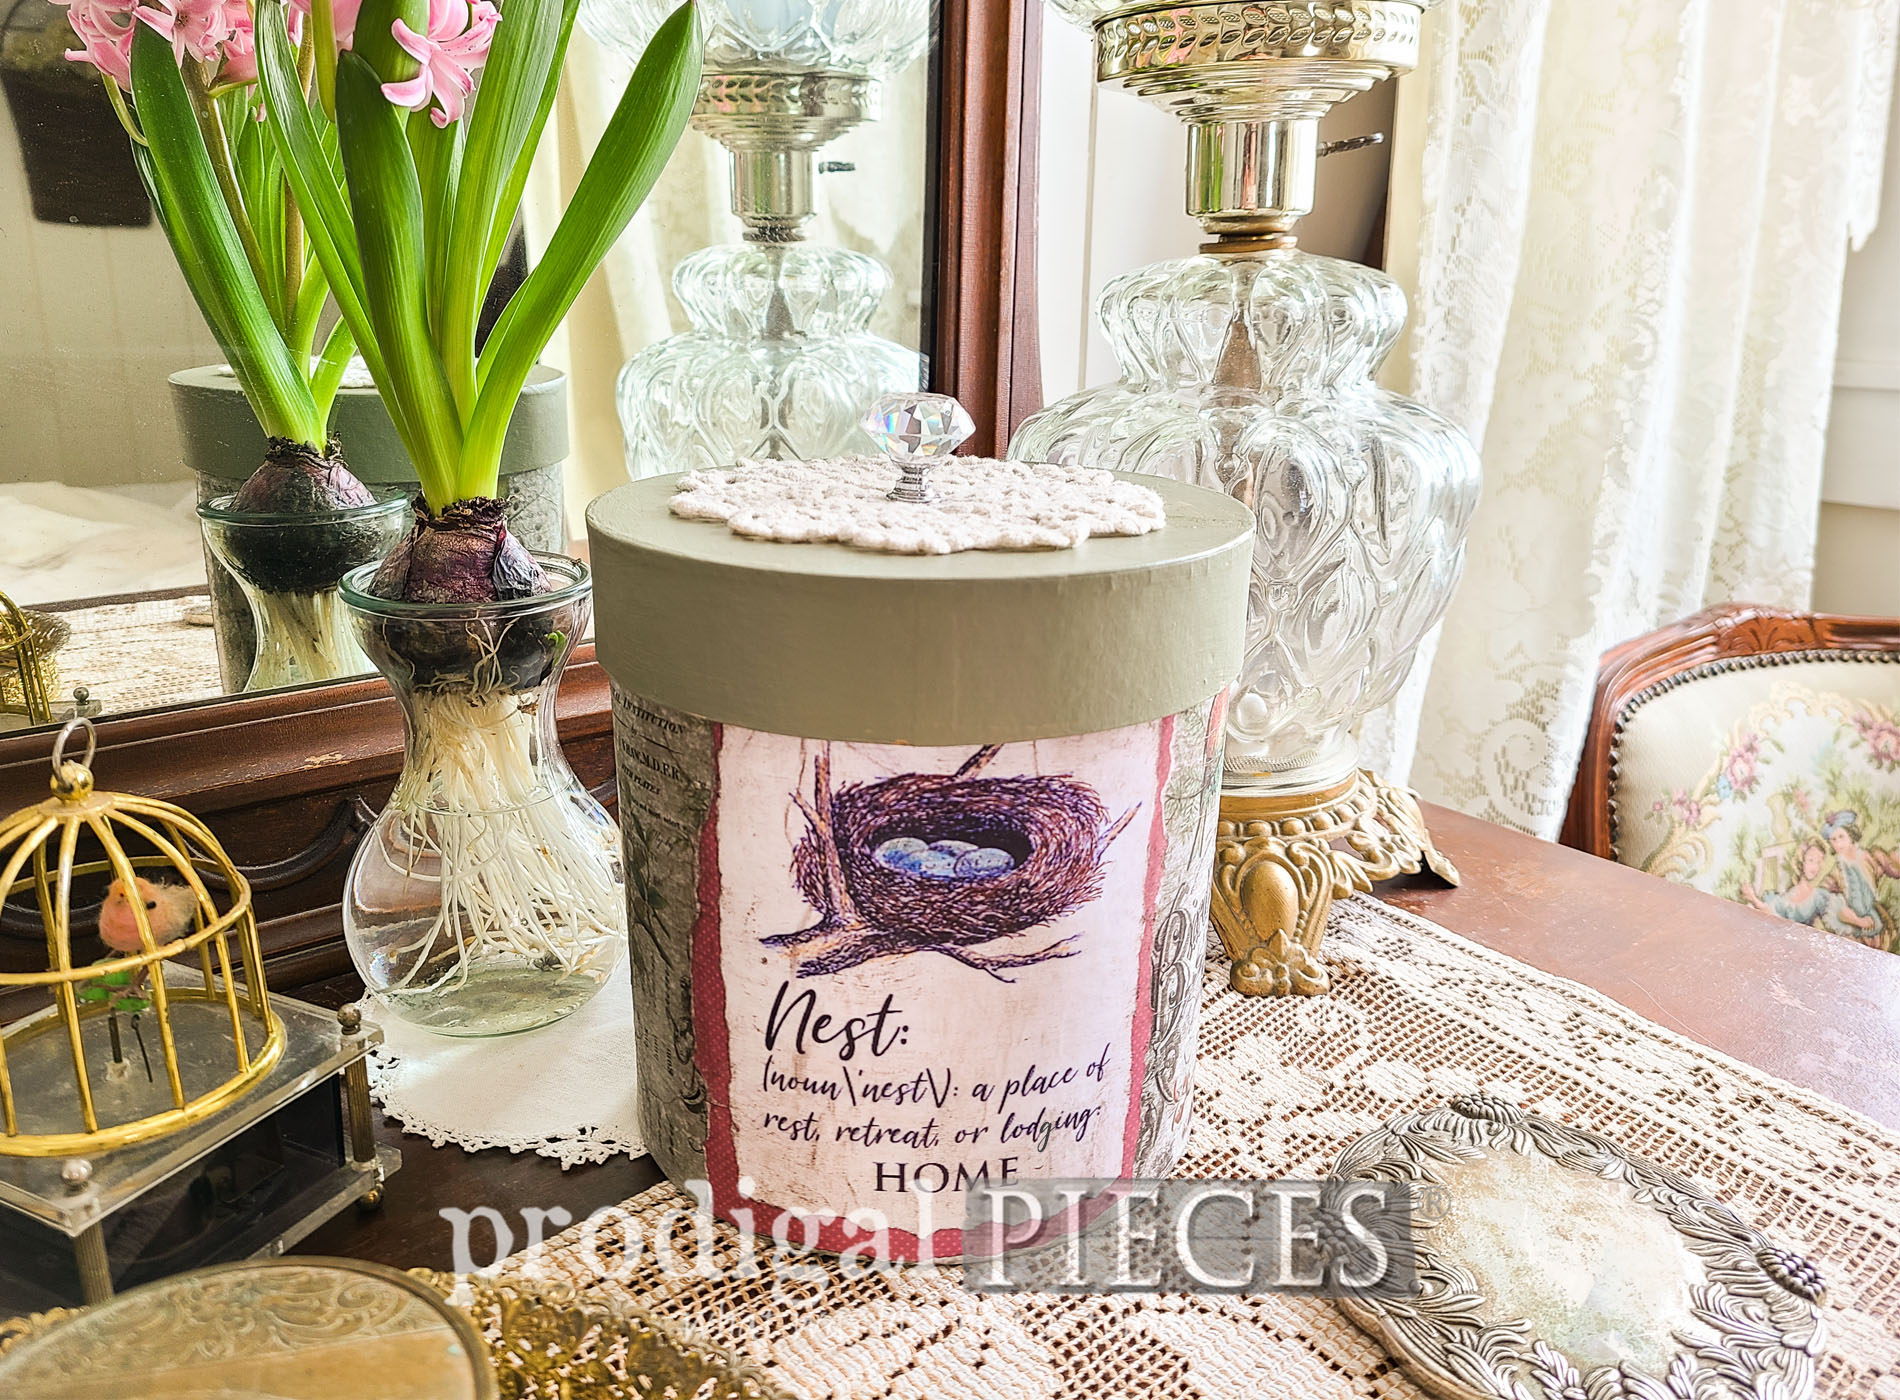 Featured DIY Decoupage Box with Vintage Bird Style by Larissa of Prodigal Pieces | prodigalpieces.com #prodigalpieces #diy #decoupage #home #homedecor